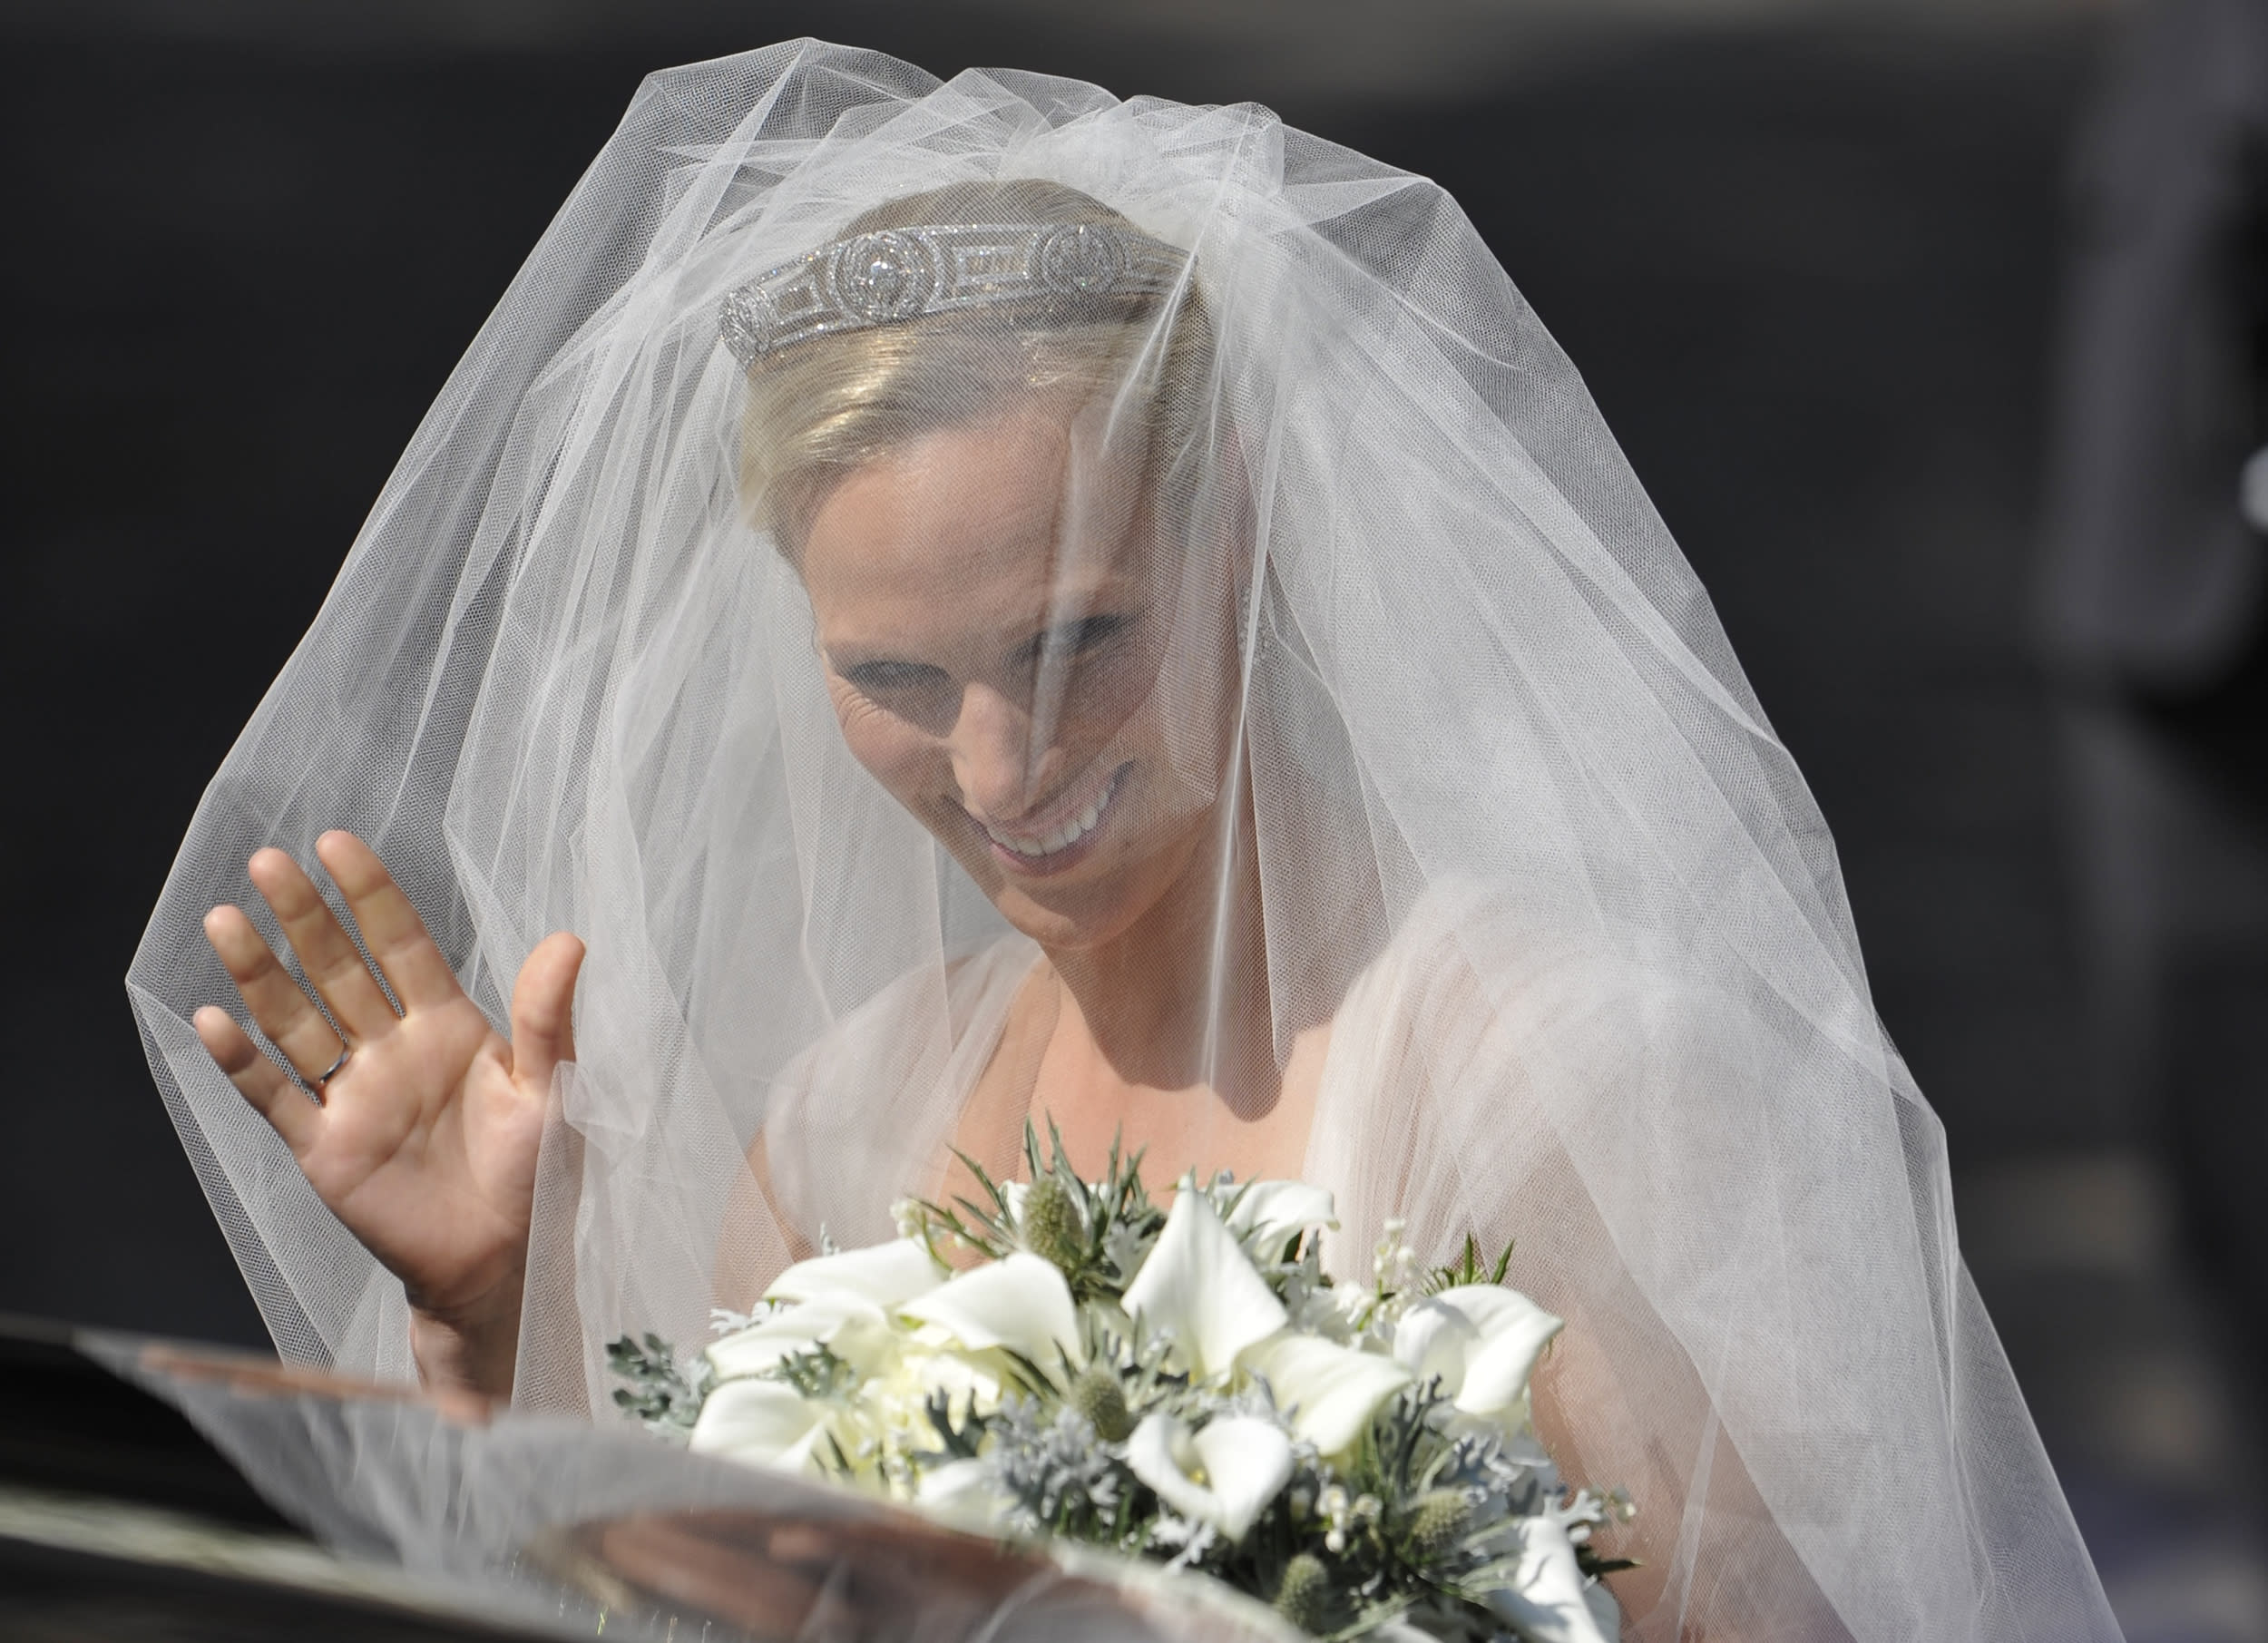 Britain's Zara Phillips, the eldest granddaughter of Queen Elizabeth, arrives  for her wedding to England rugby captain Mike Tindall, at Canongate Kirk in Edinburgh, Scotland July 30, 2011.   REUTERS/Dylan Martinez (BRITAIN  - Tags: ENTERTAINMENT SOCIETY ROYALS IMAGE OF THE DAY TOP PICTURE)